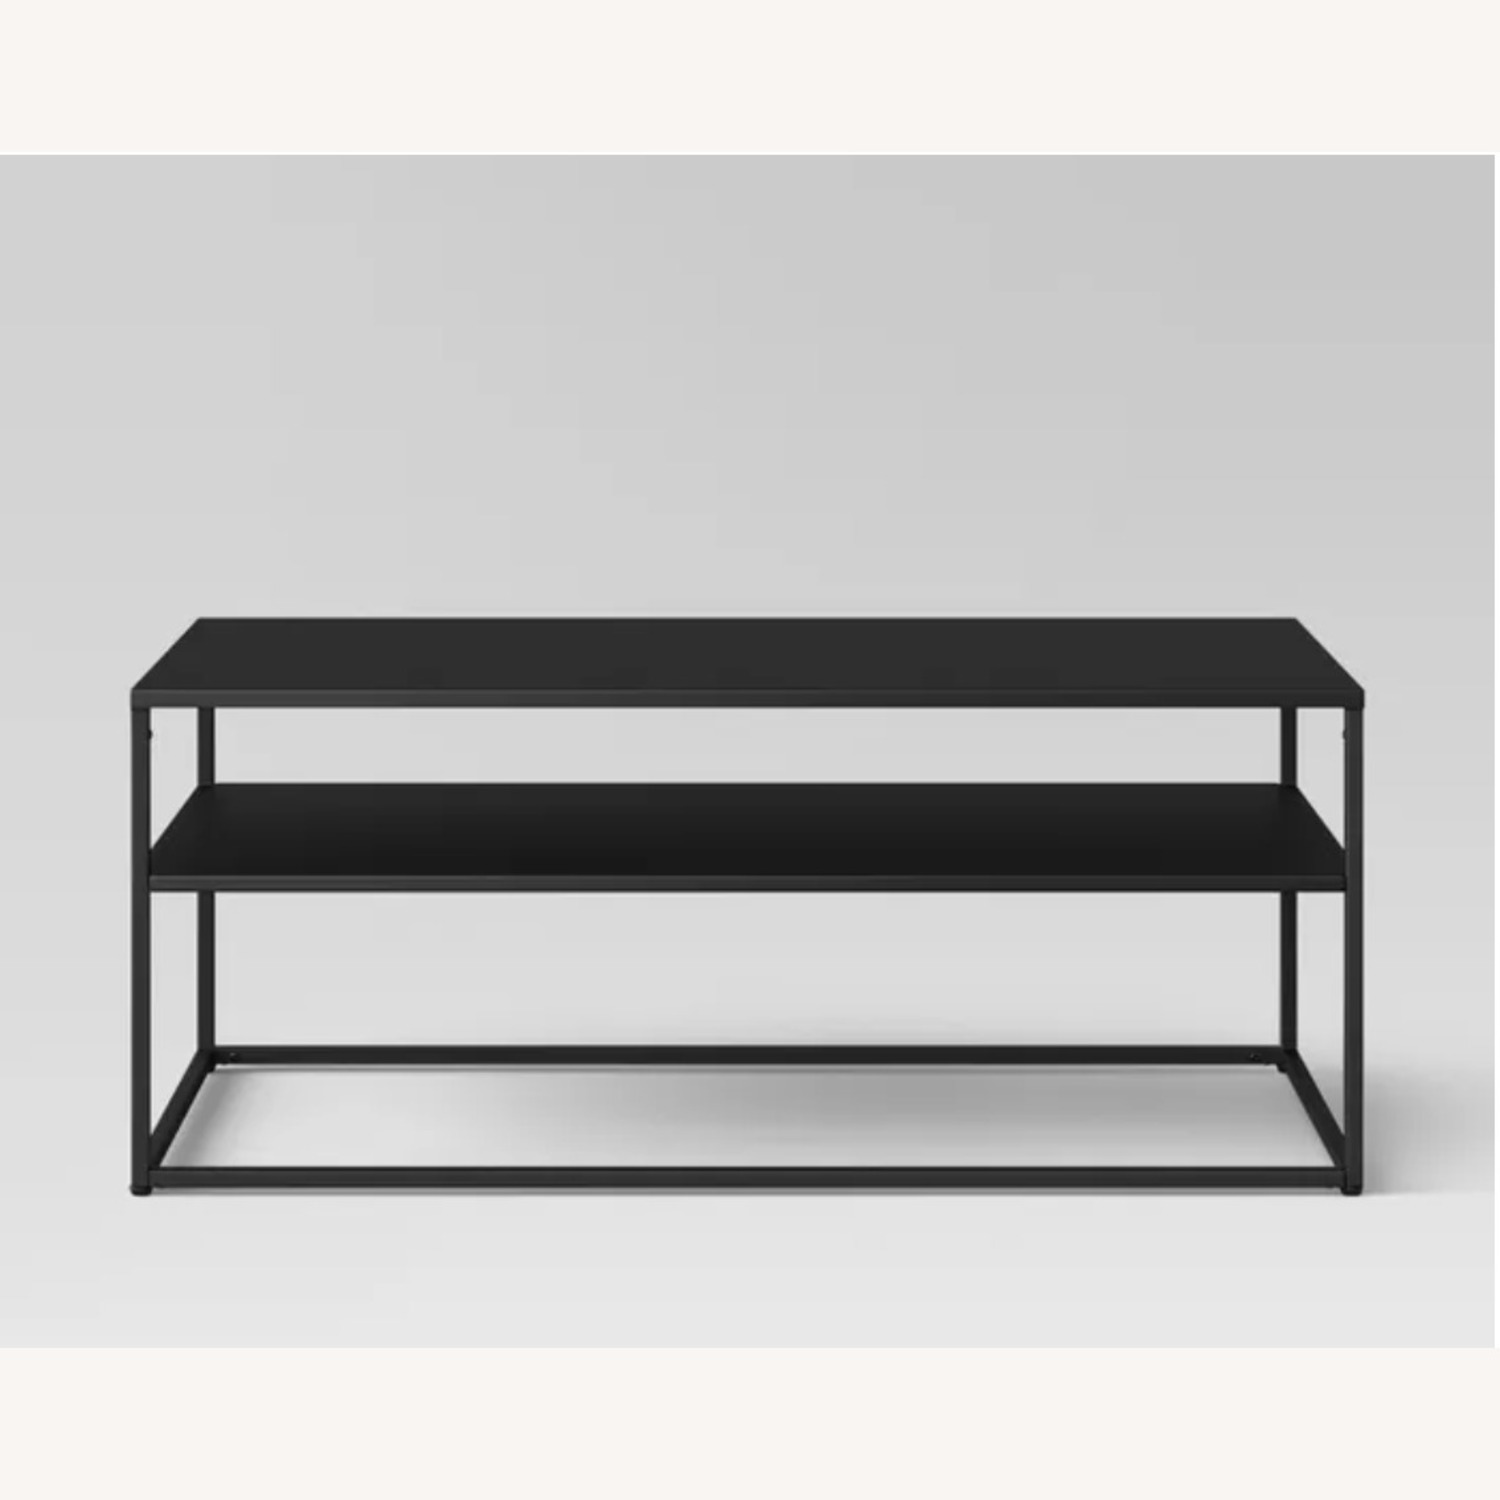 Target Glasgow Metal Coffee Table Black - Project 62 - image-2